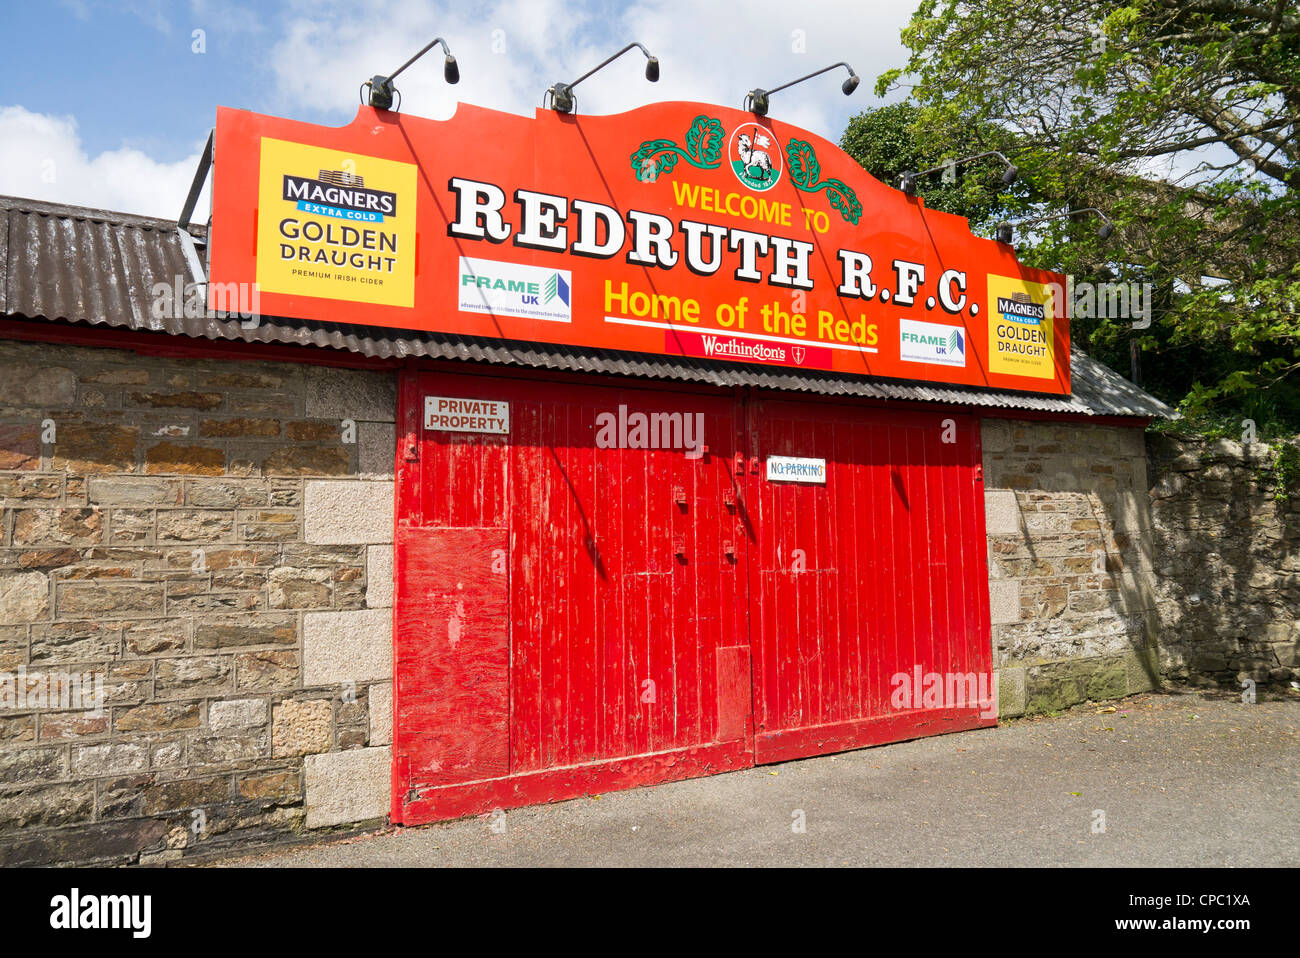 Redruth Rugby Football Club colourful red entrance doors Cornwall UK. & Redruth Rugby Football Club colourful red entrance doors Cornwall ... pezcame.com